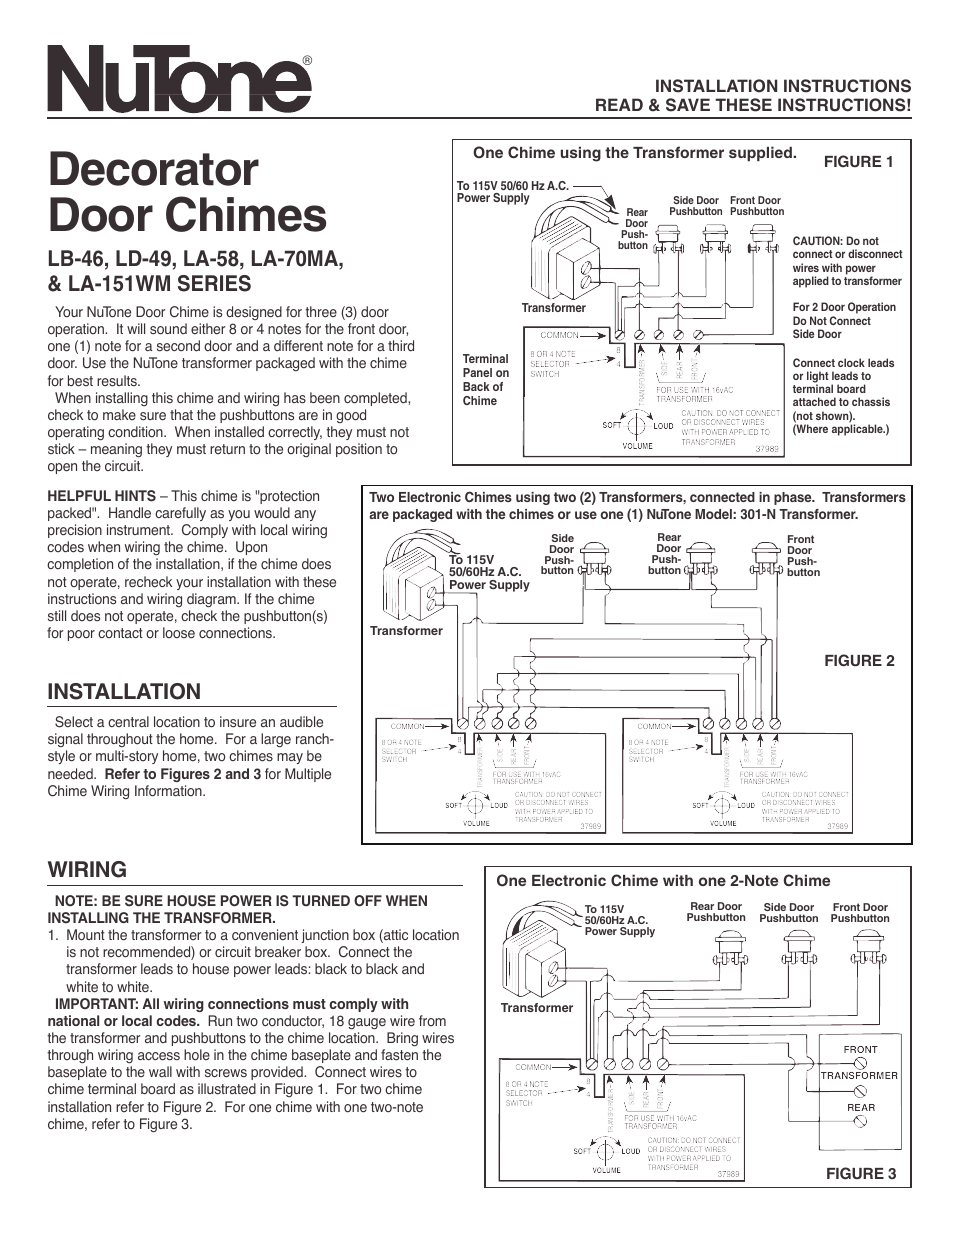 nutone decorator door chimes la 58 page1 nutone decorator door chimes la 58 user manual 2 pages also nutone door chime wiring diagram at mifinder.co